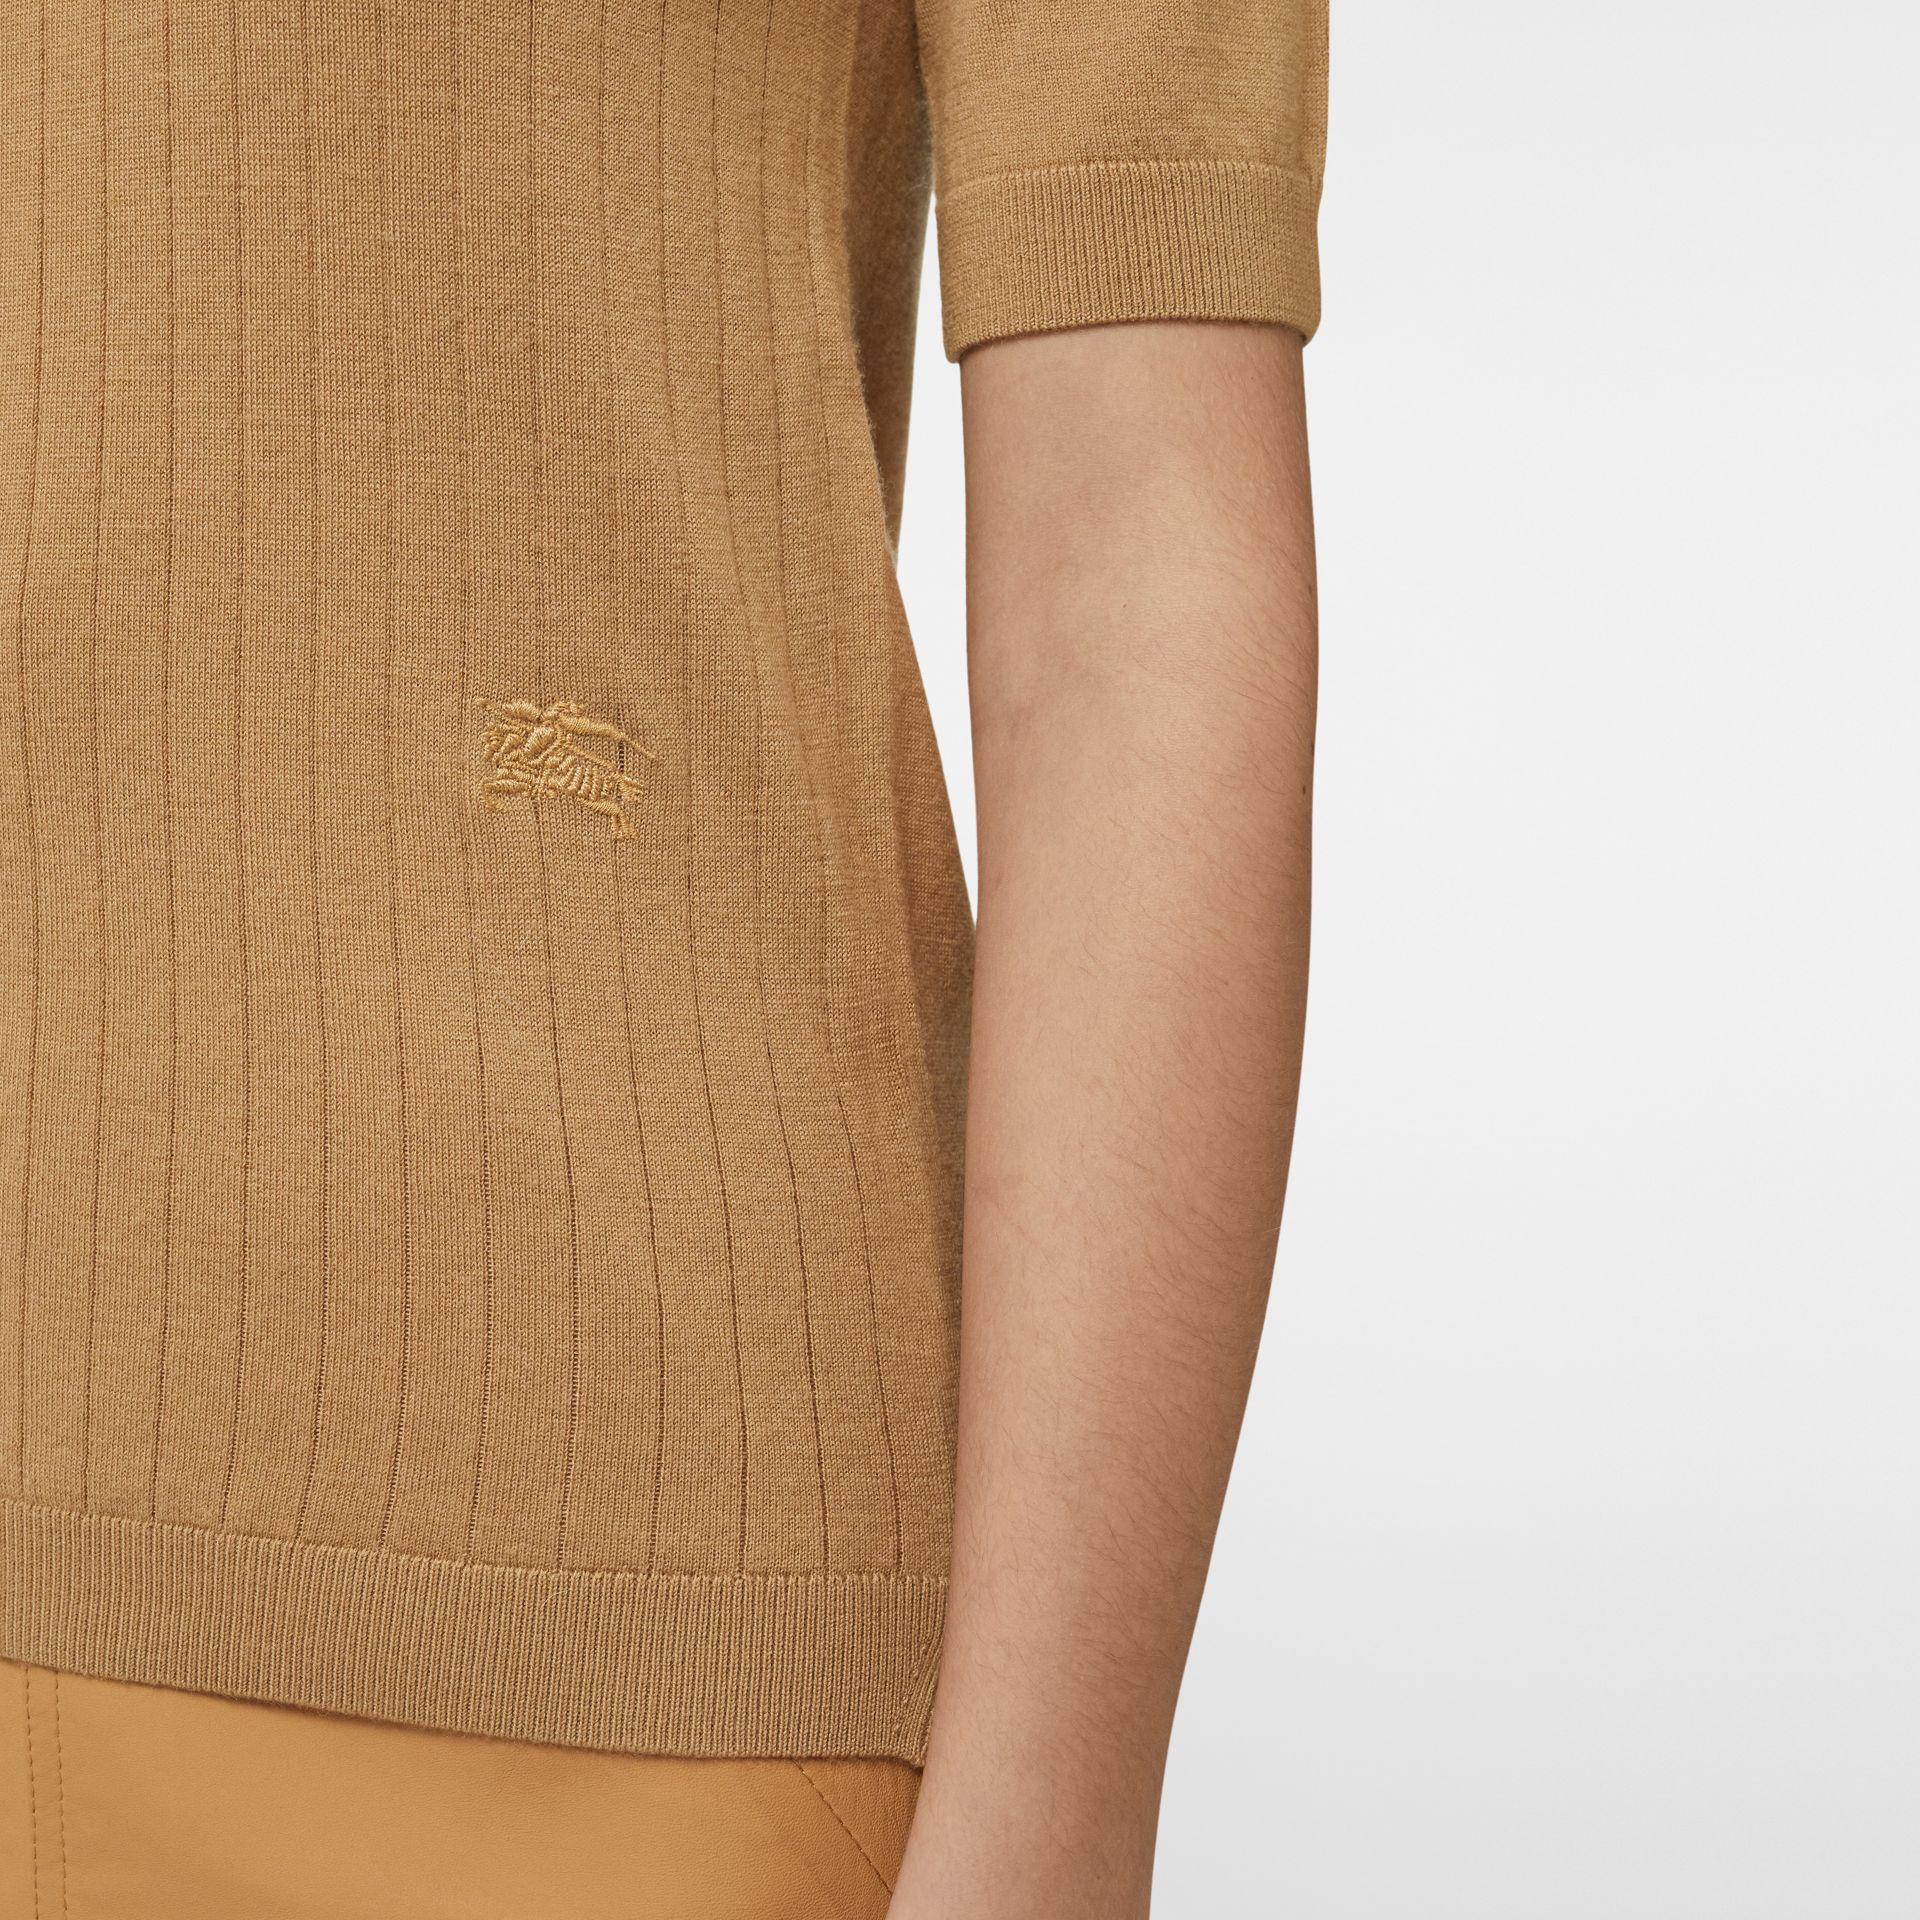 Short-sleeve Rib Knit Cashmere Sweater in Camel - Women | Burberry Singapore - gallery image 4